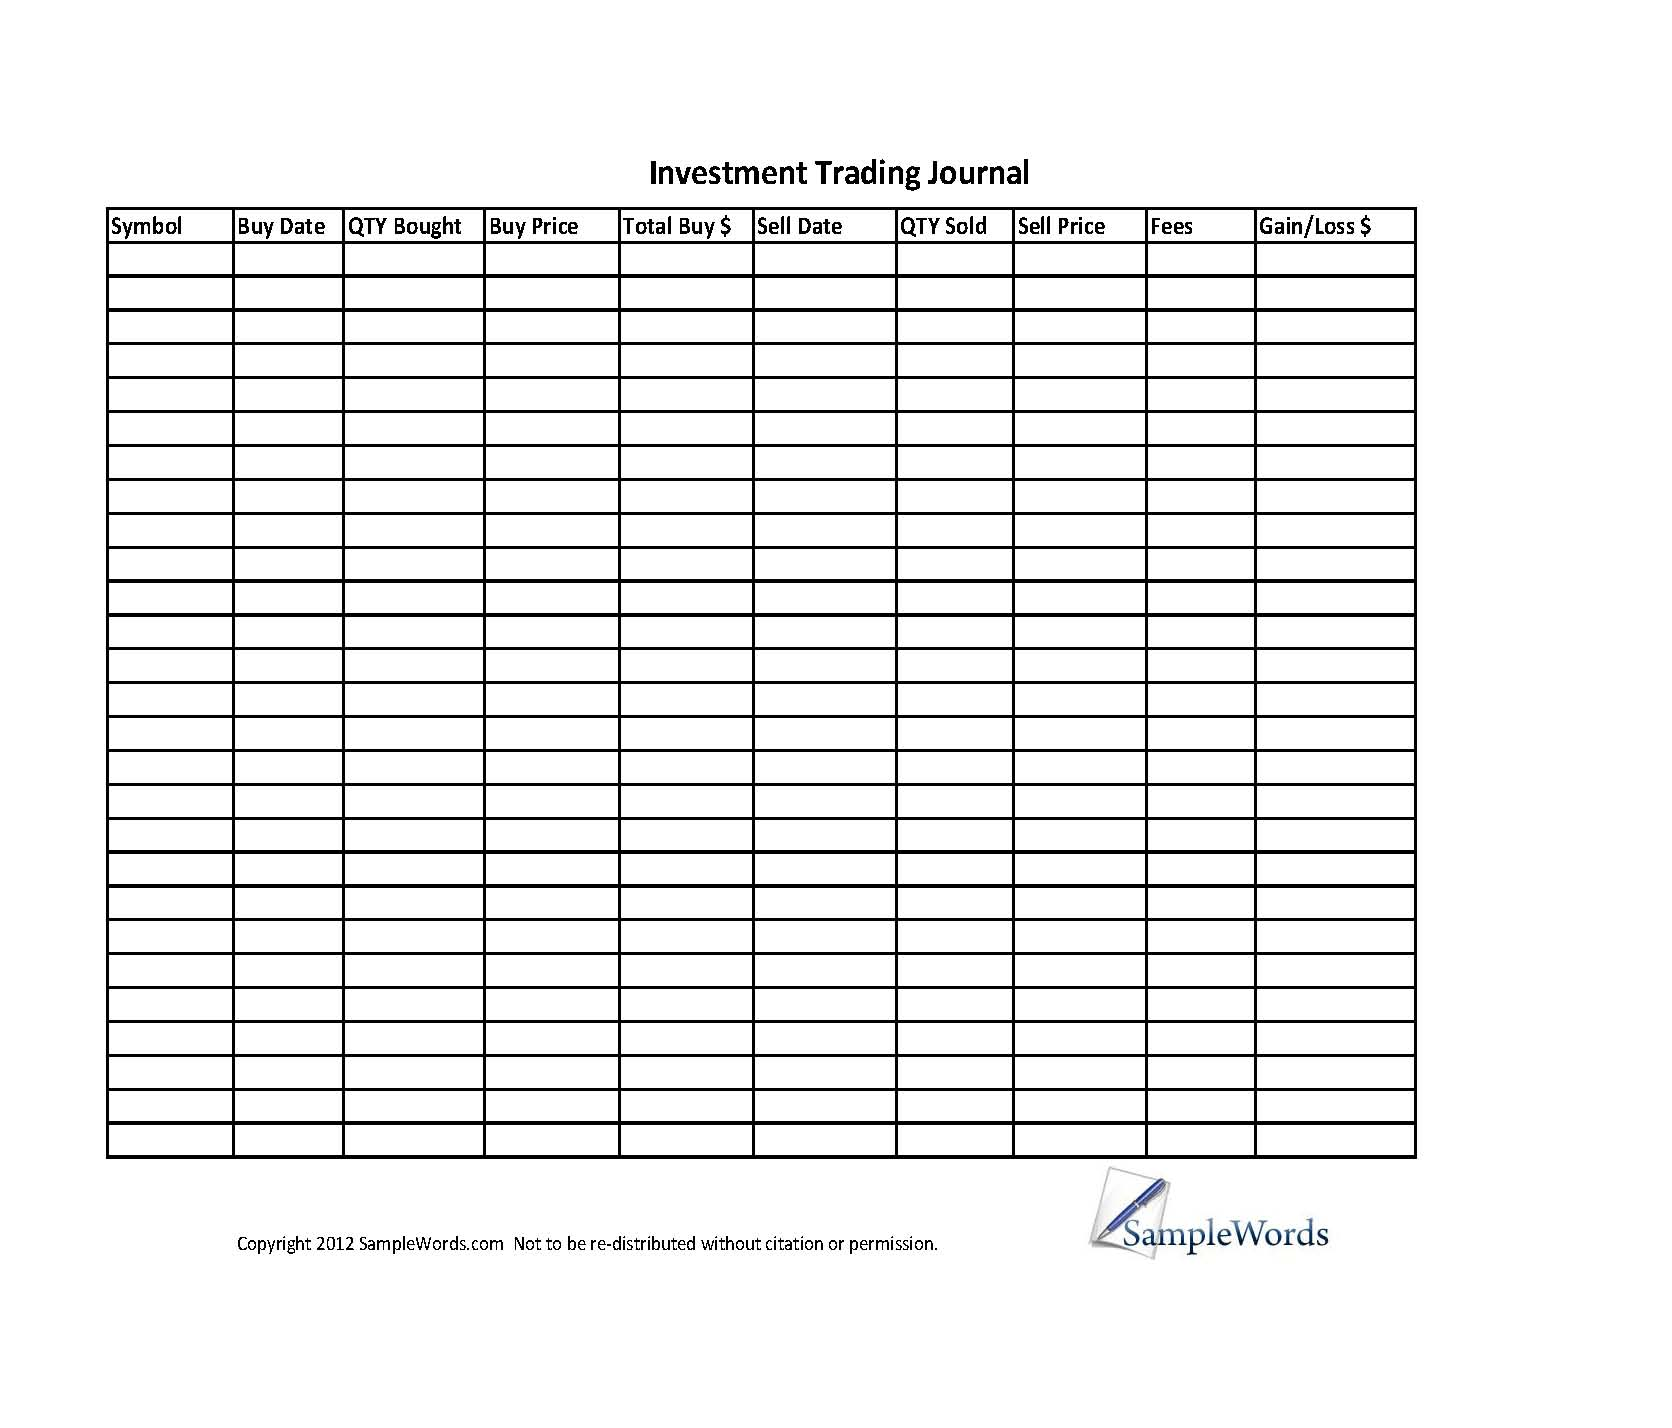 greg thurman's trading journal spreadsheet